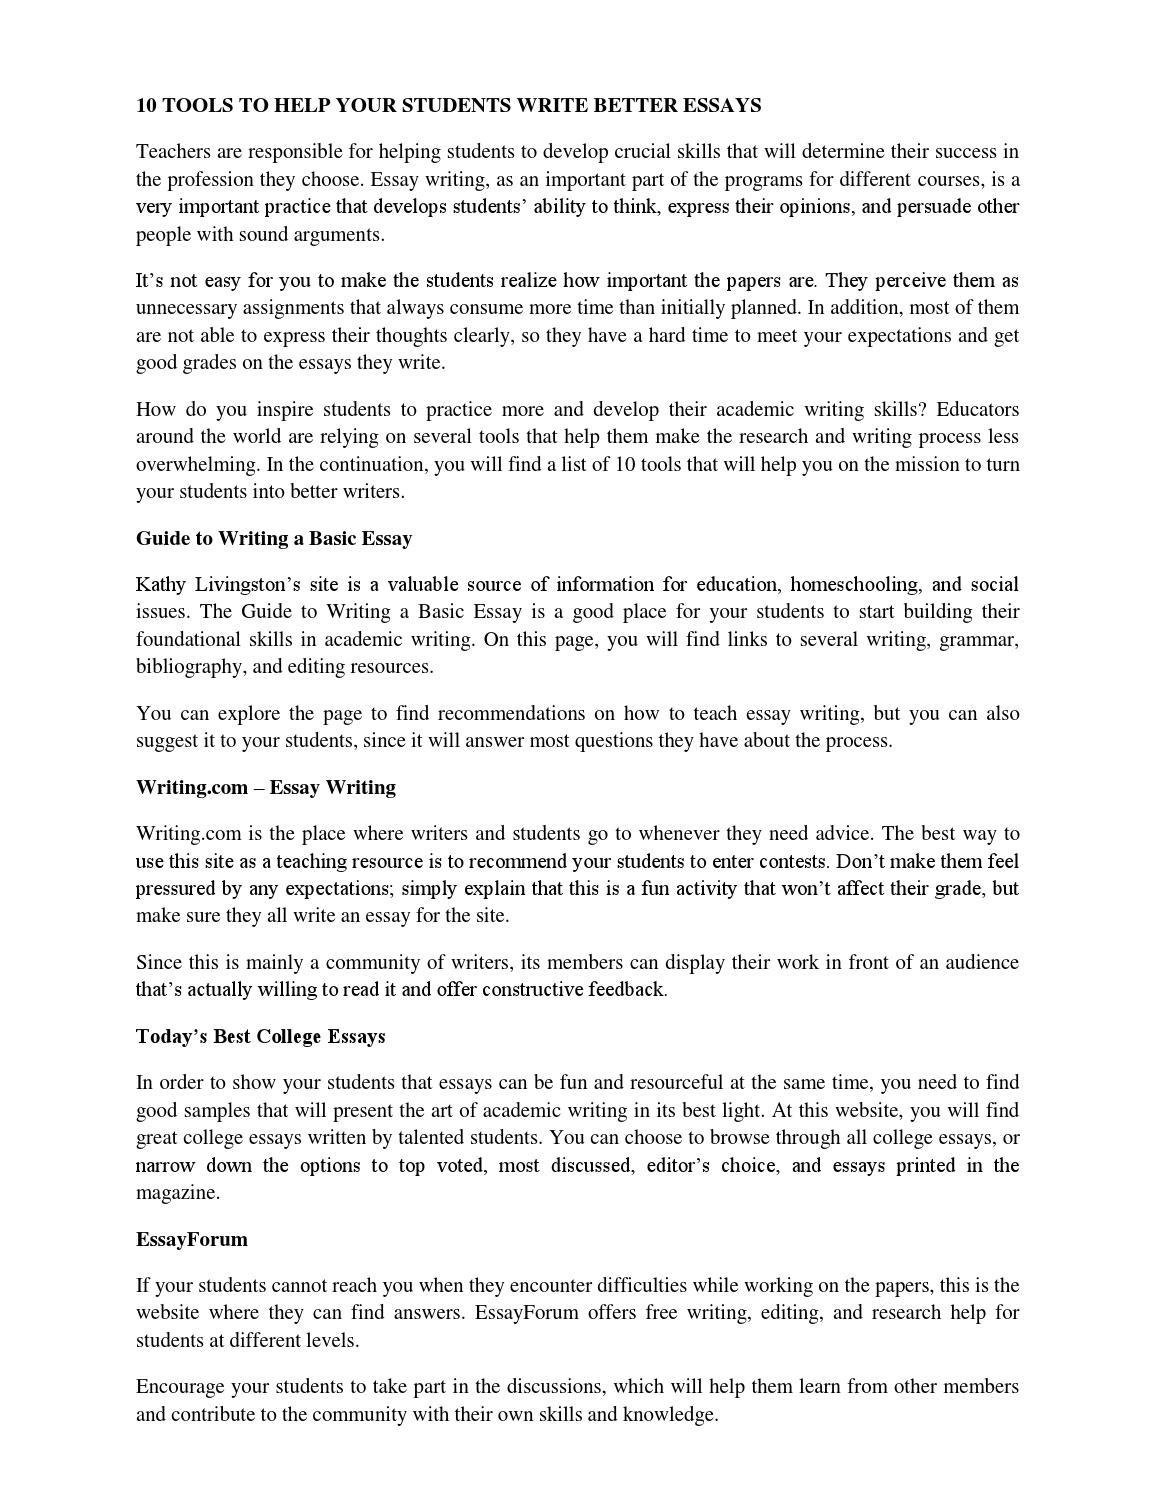 010 Essay Writing Websites Reviews For Students Editing Free Page Research Paper Example That20 Breathtaking Papers Publish Online Download Pdf Full Full